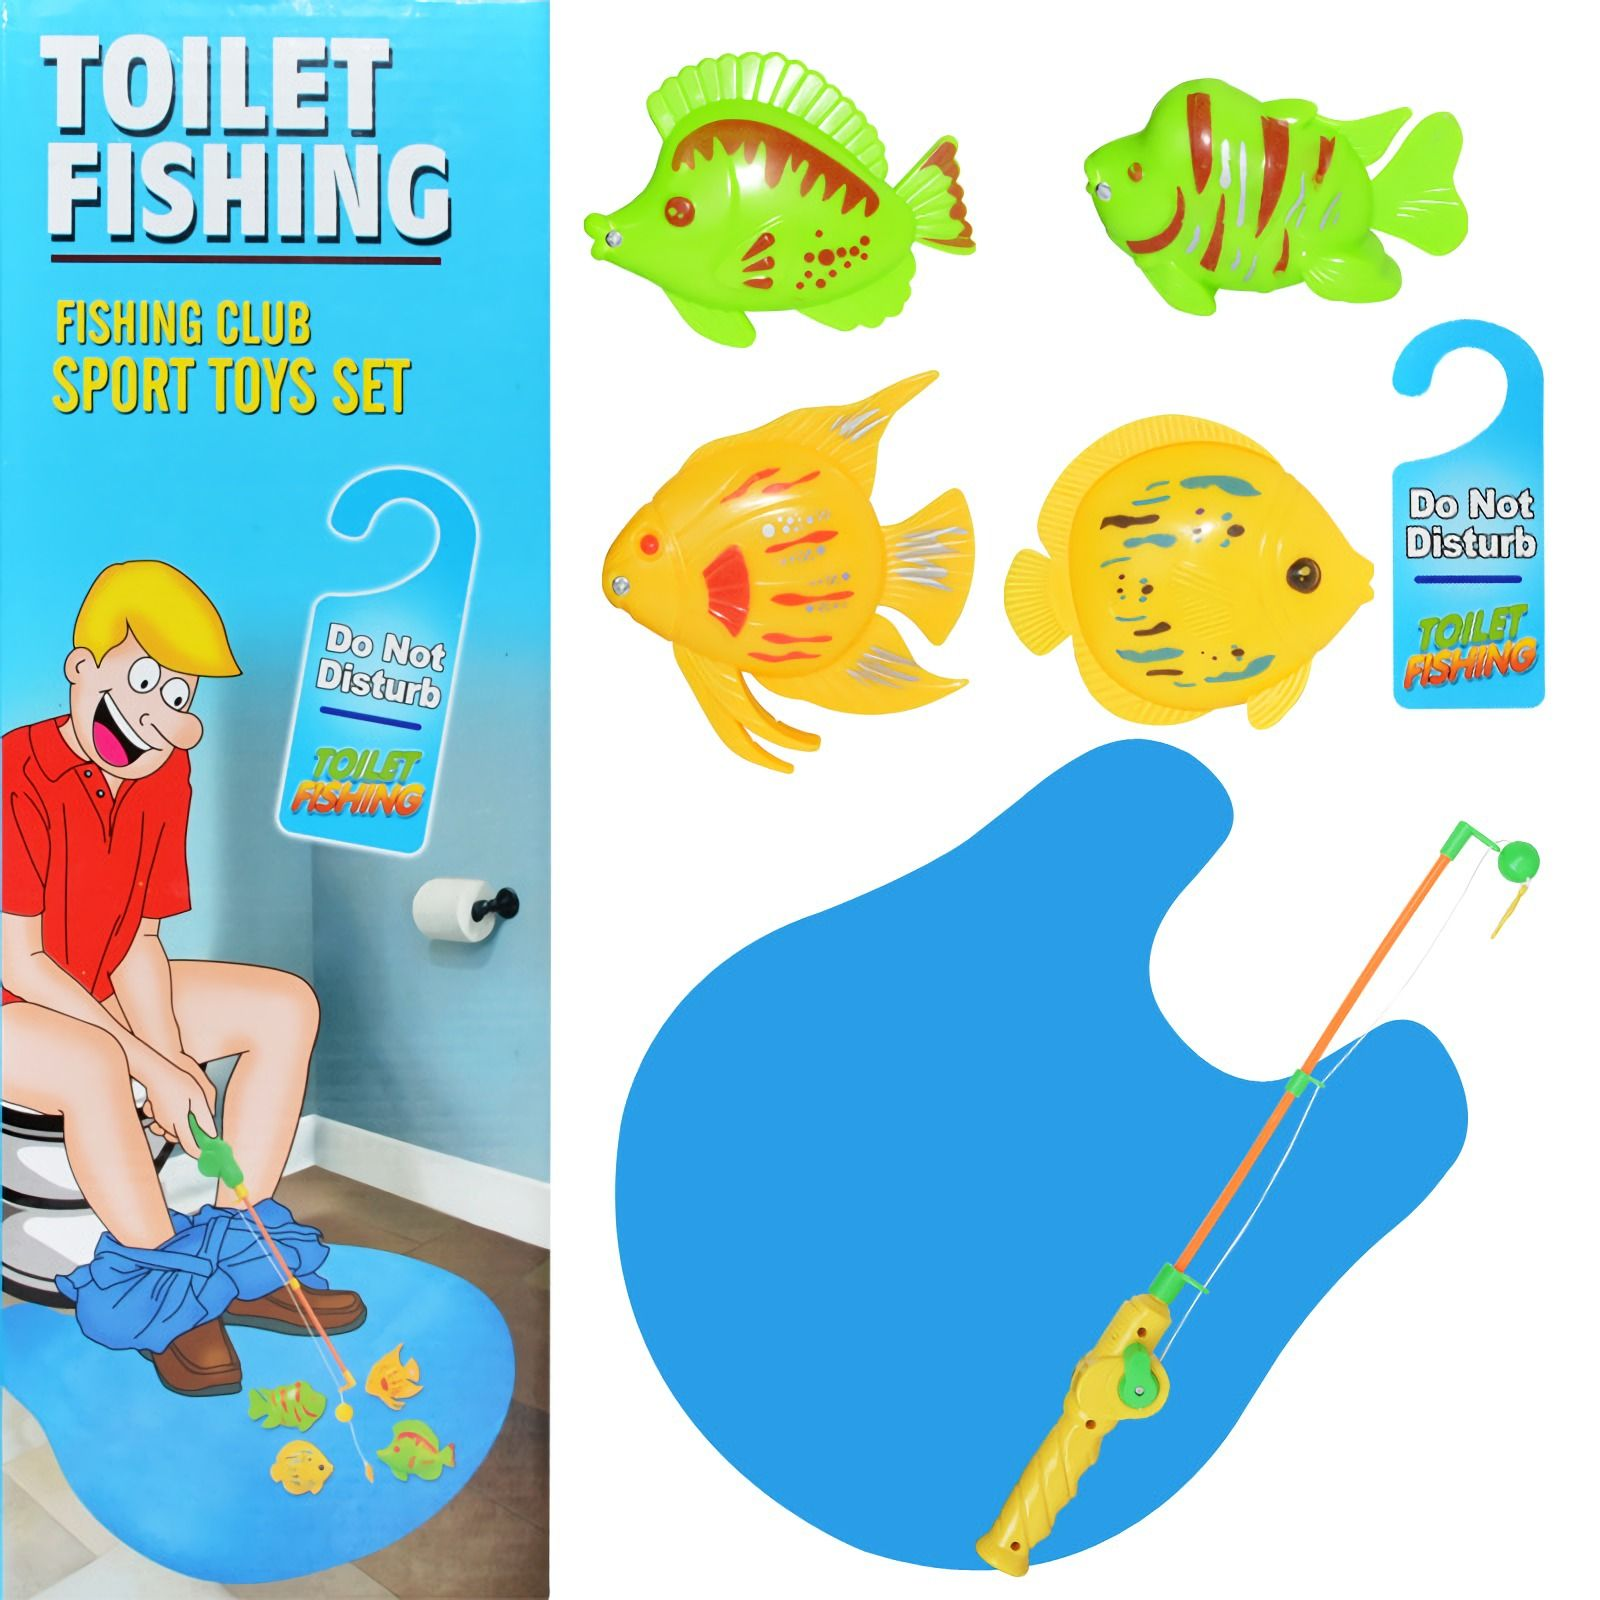 1 Practice Fishing Now At Home Make Your Potty Time Entertaining